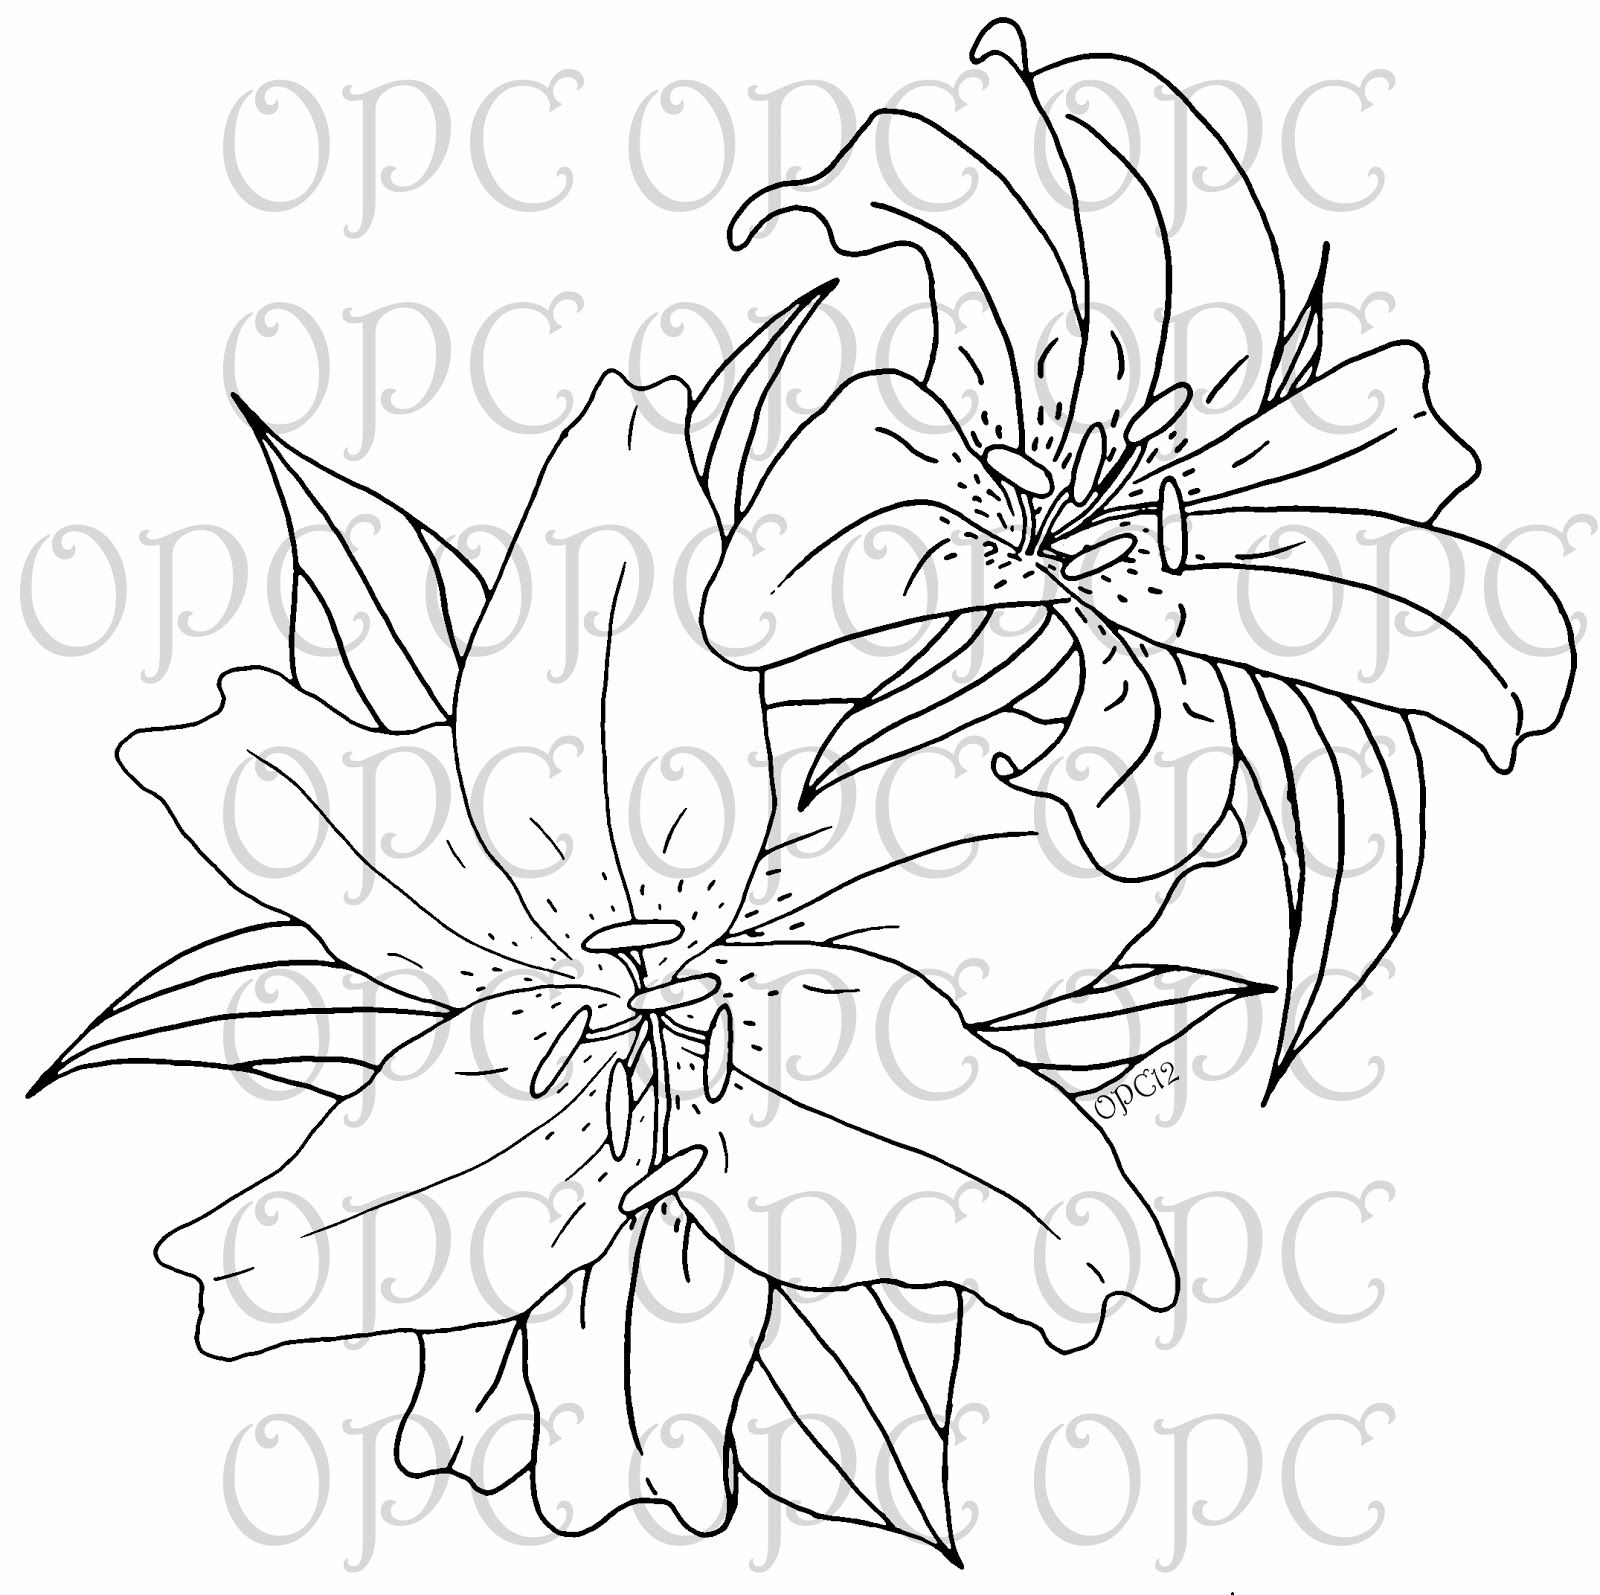 Oriental Lilies Are Known For Their Fragrant Perfume Blooming Mid